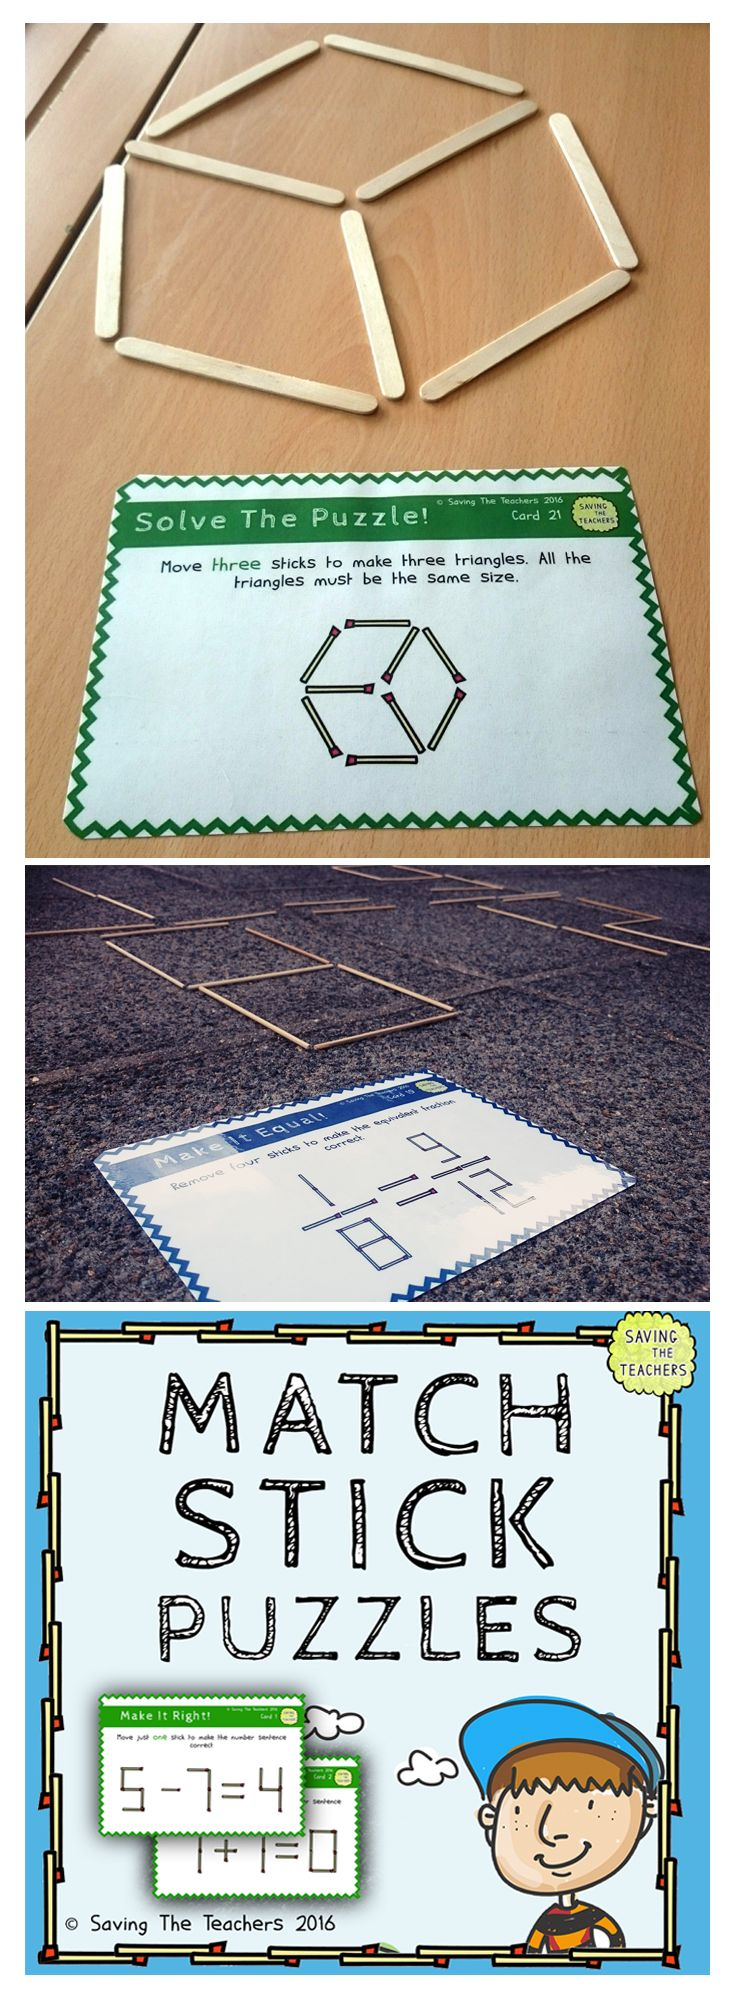 Matchstick Puzzles – Challenge your children with this great maths extension or problem solving activity where children must move the required amount of matchsticks to make the equation correct. My children could not get enough of this activity! Happy teaching! - https://www.teacherspayteachers.com/Product/Match-Stick-Maths-Problem-Solving-Task-Cards-Grade-5-and-6-Extension-Activity-2615829